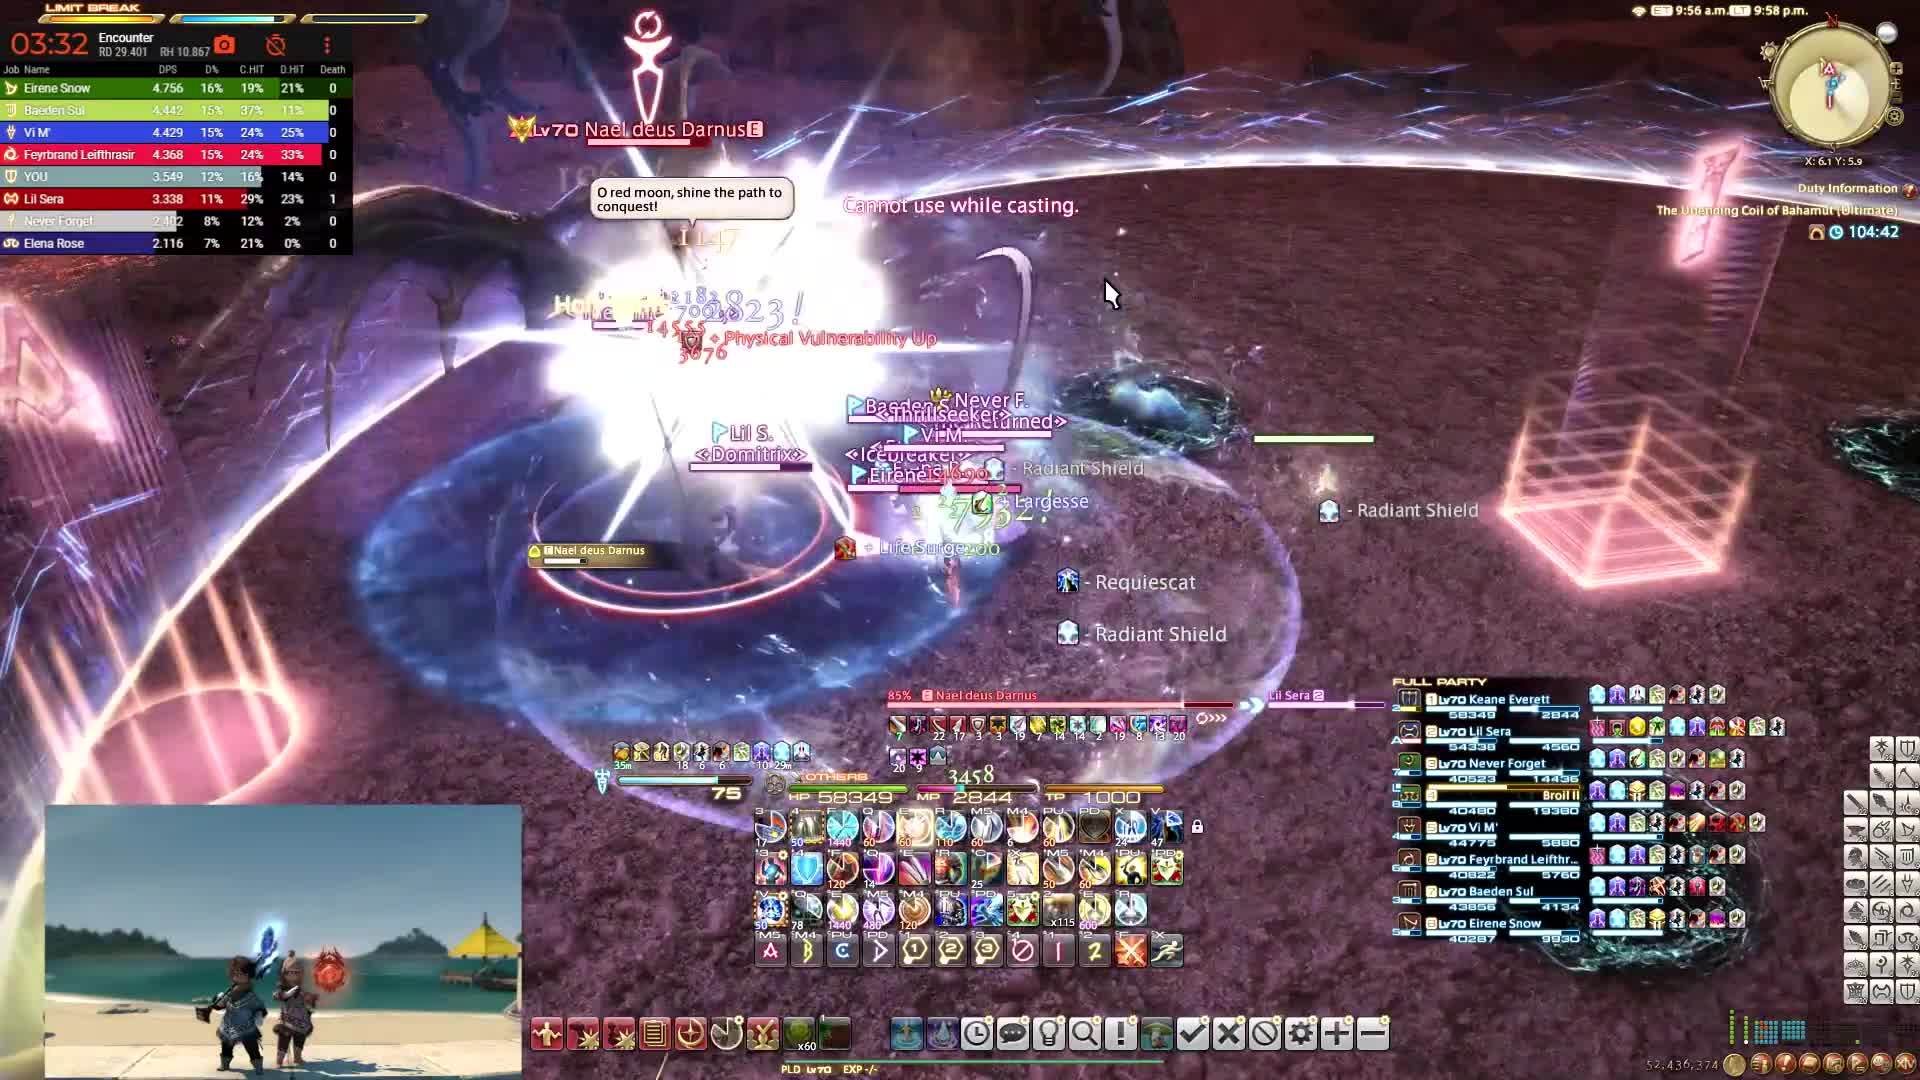 Ultimate Ffxiv Gifs Search | Search & Share on Homdor